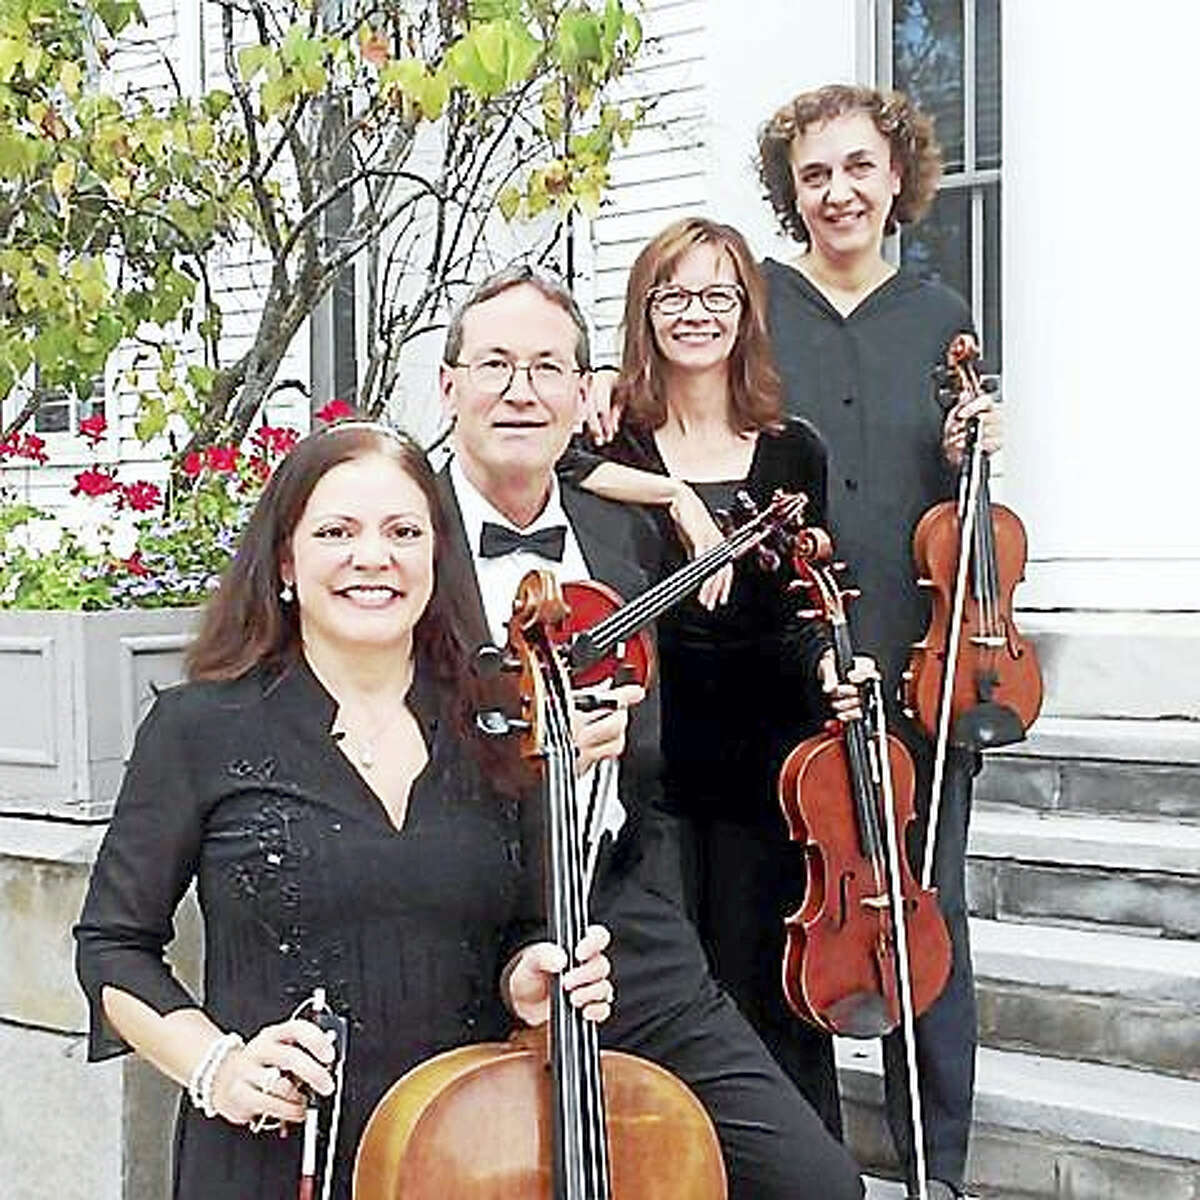 Contributed photoThe Deming Quartet performs in Woodbury this weekend.